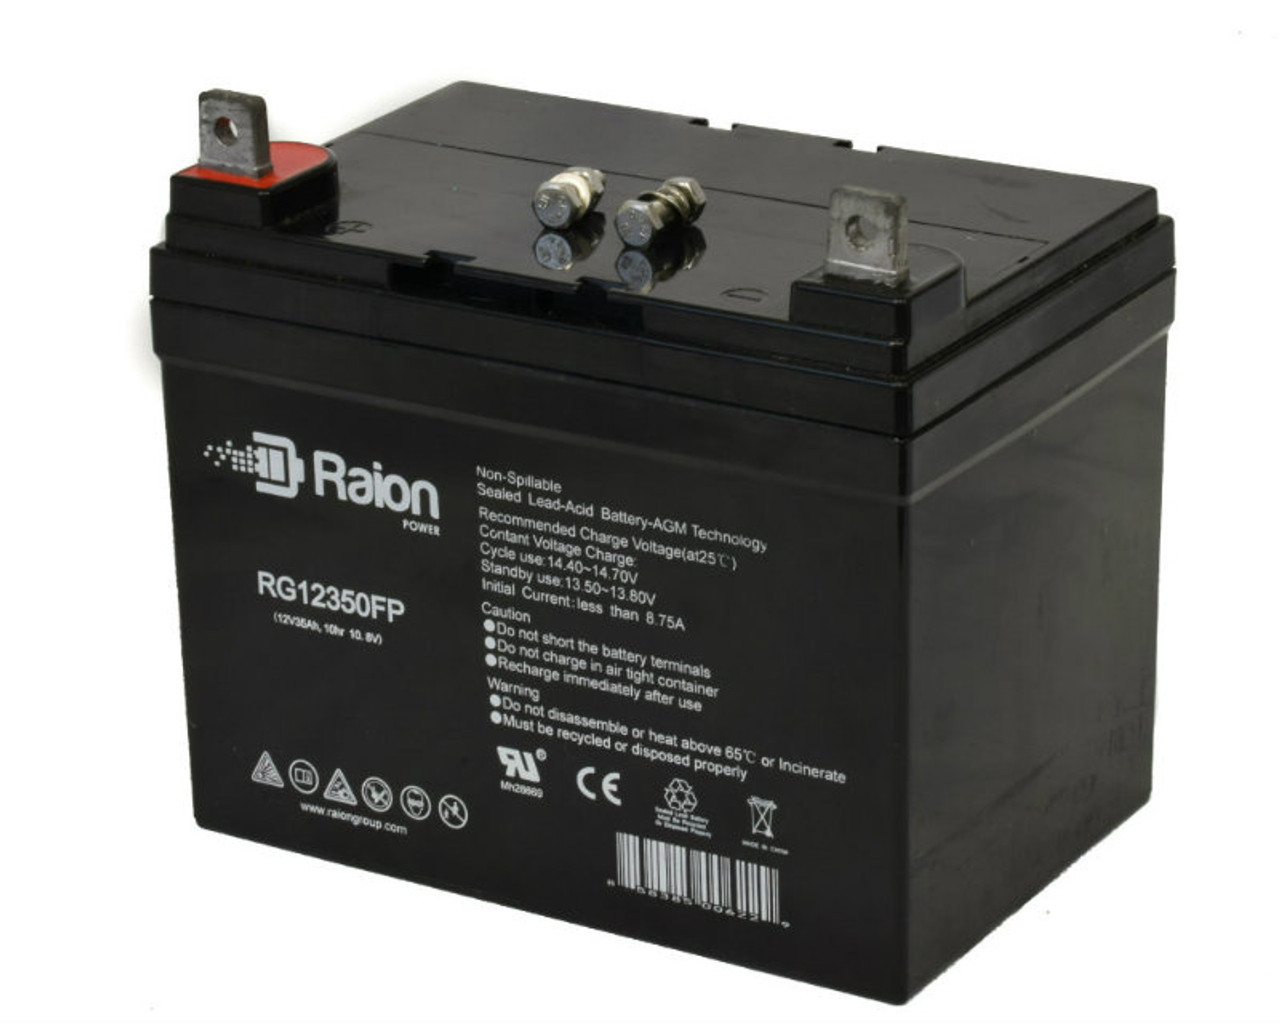 RG12350FP Sealed Lead Acid Battery Pack For Bruno RACECUB 46 Mobility Scooter